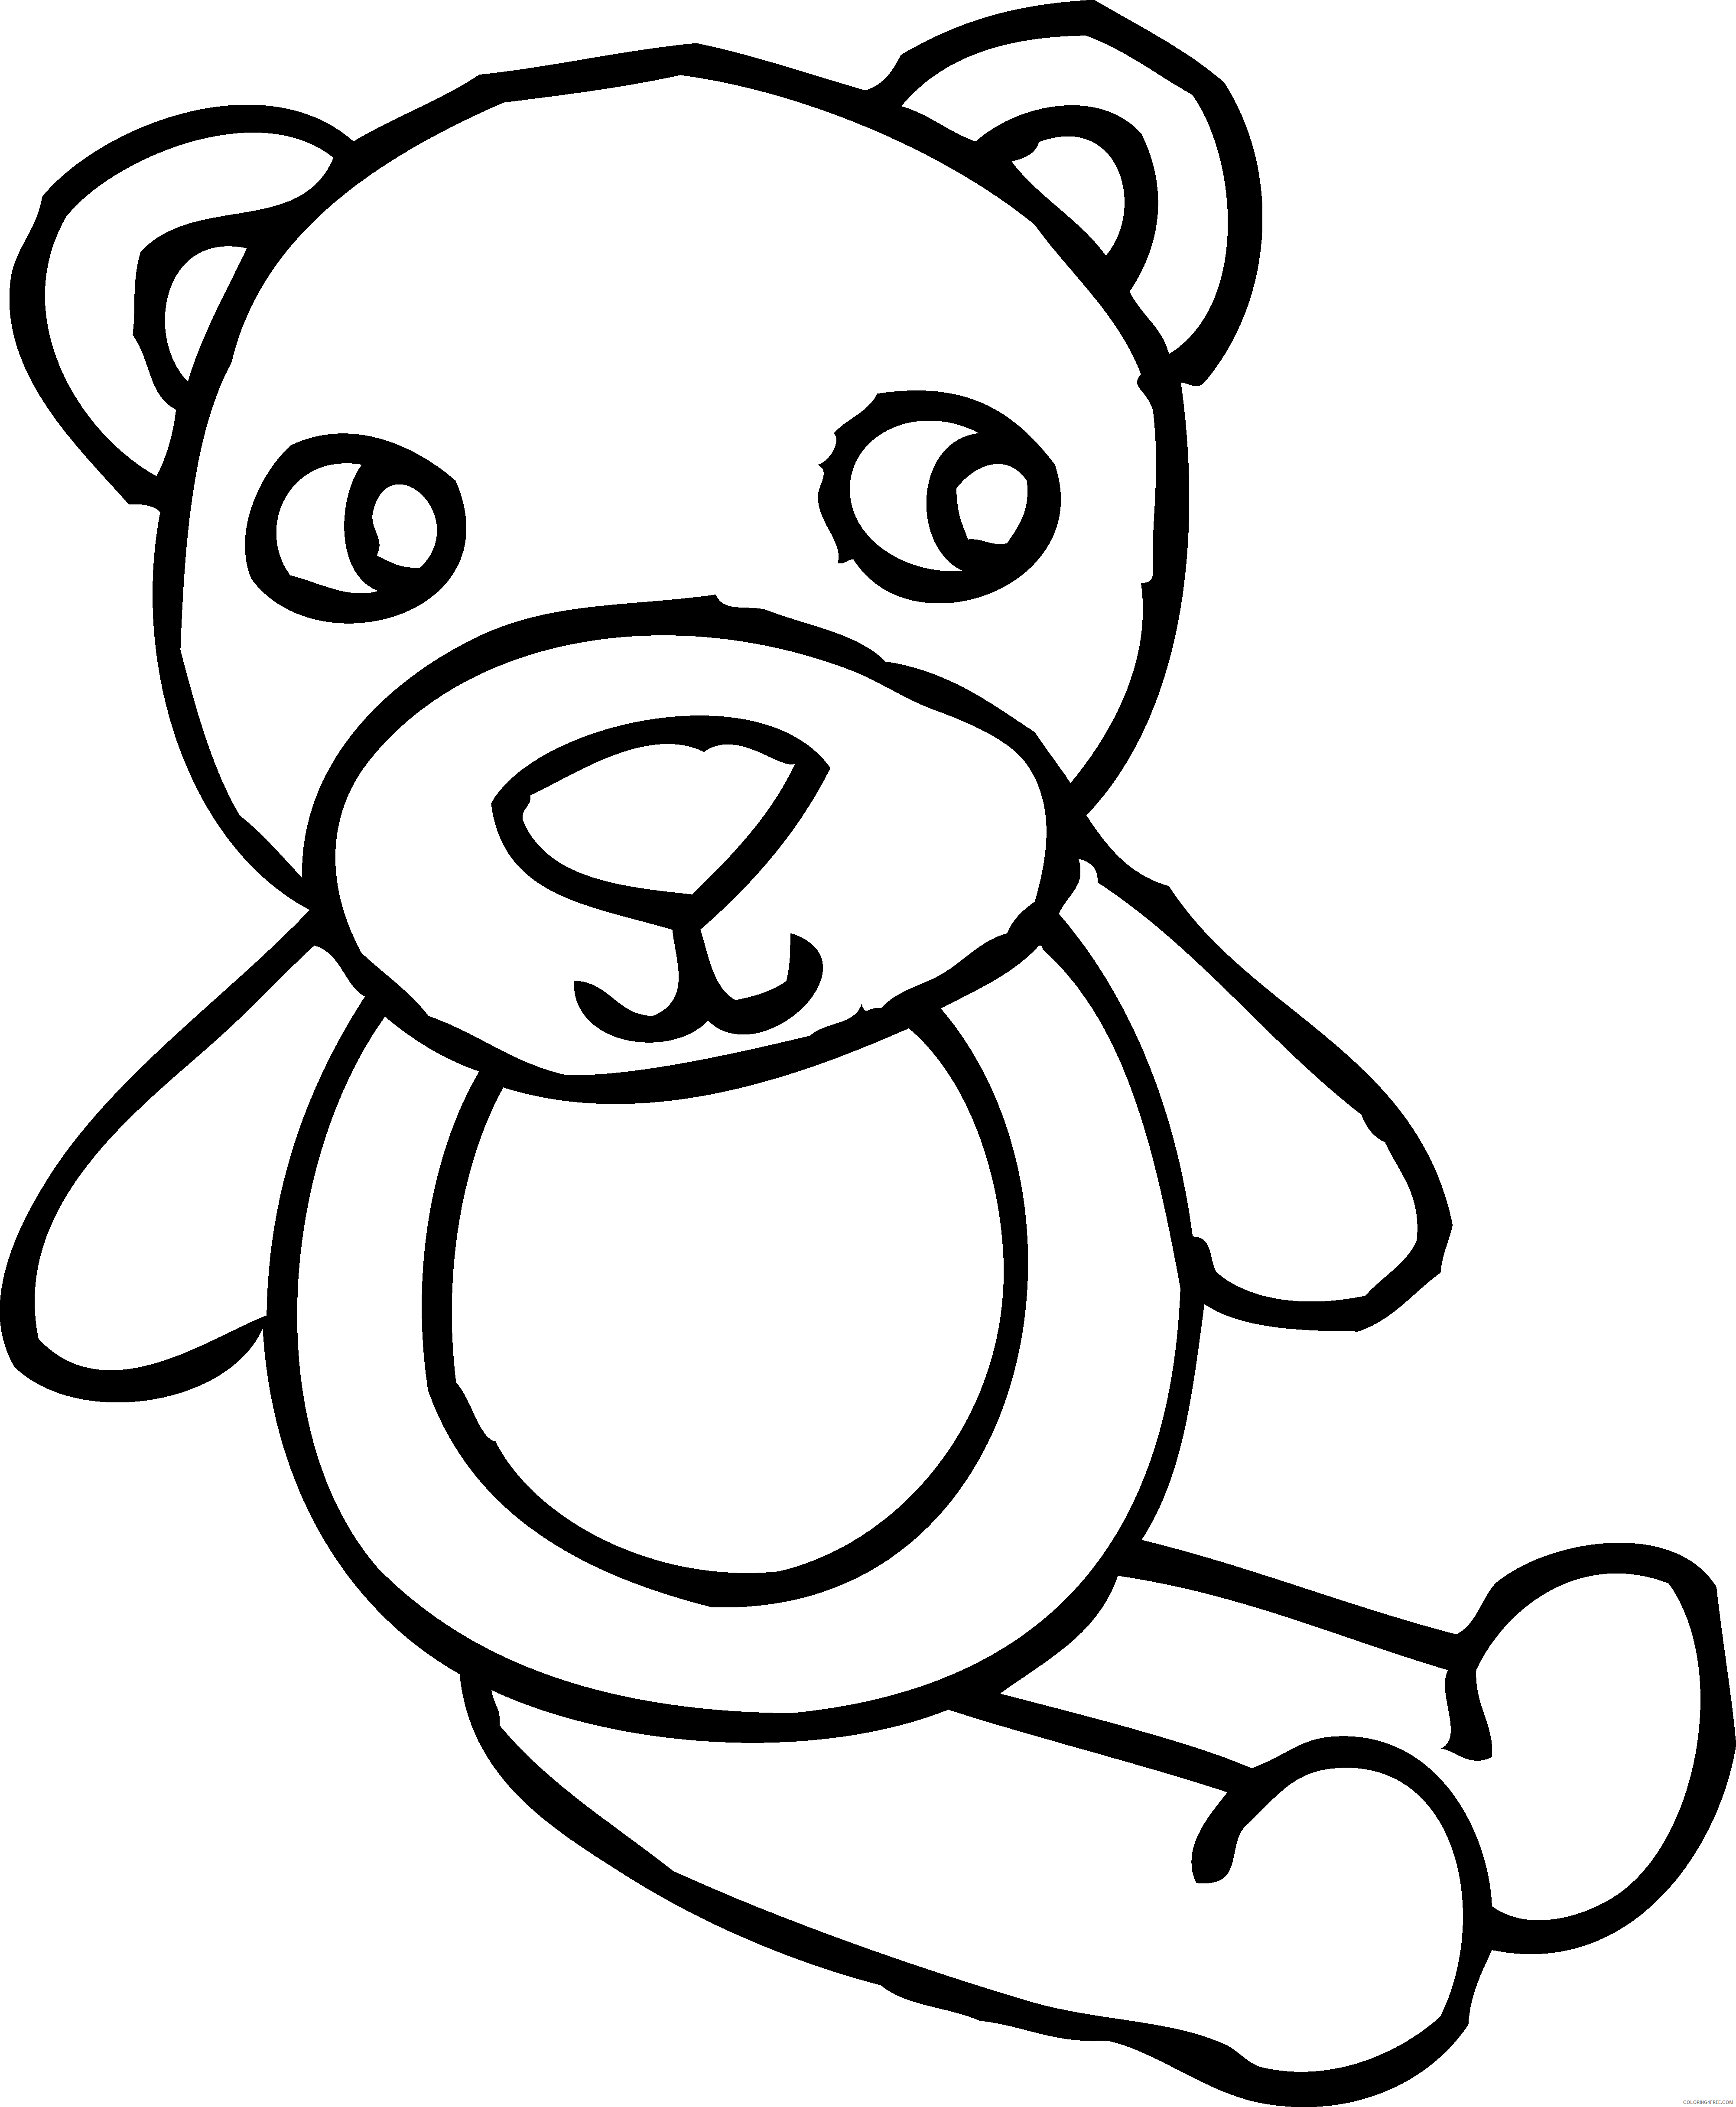 High Quality Bear Coloring Pages Outline of a bear ocoloringpages Printable Coloring4free